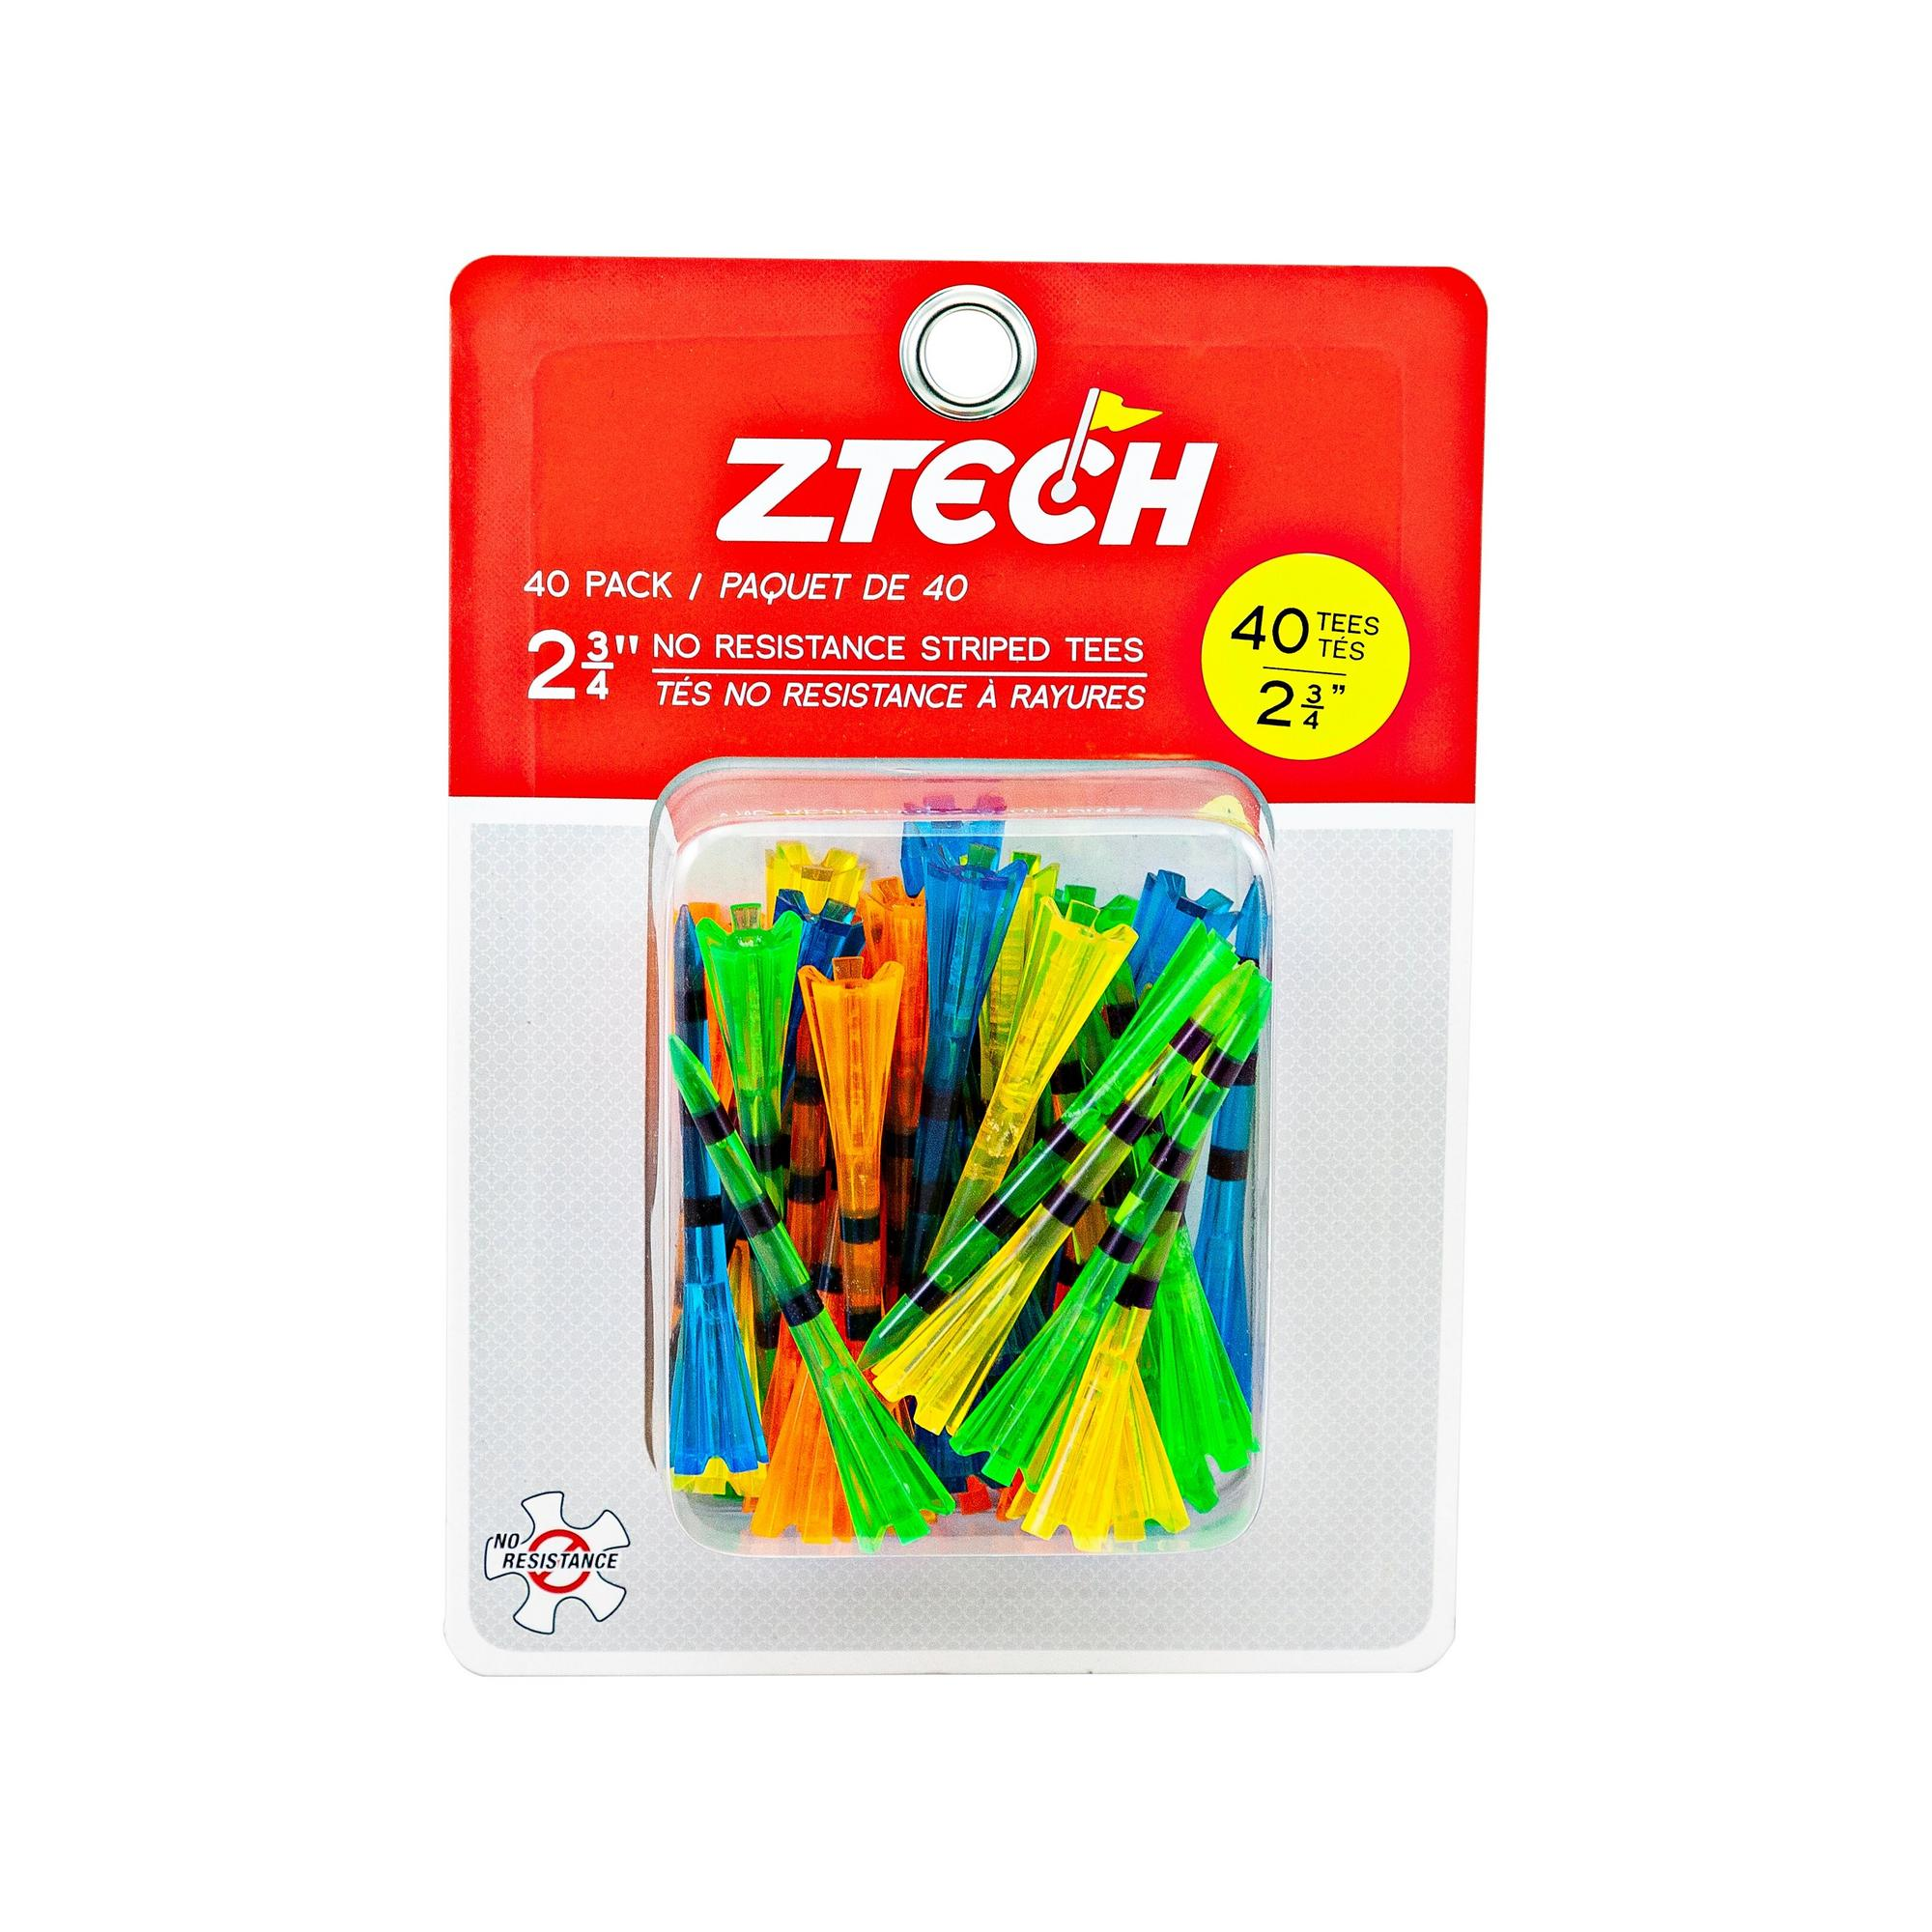 "ZTECH Translucent tees 2 3/4"" 40 pack"